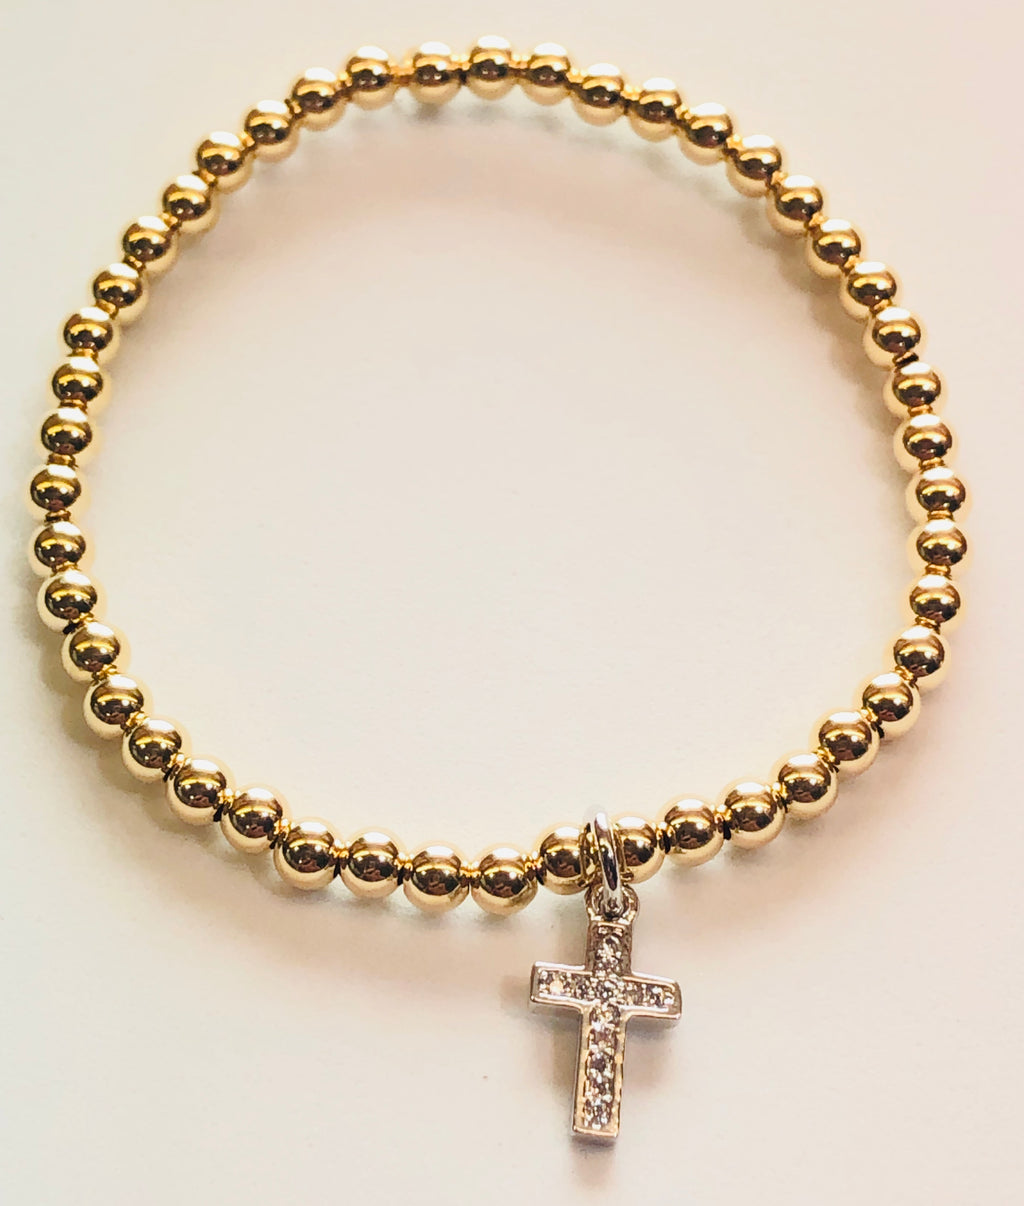 4mm 14kt Gold Filled Bead Bracelet with Silver Cross Hanging Charm